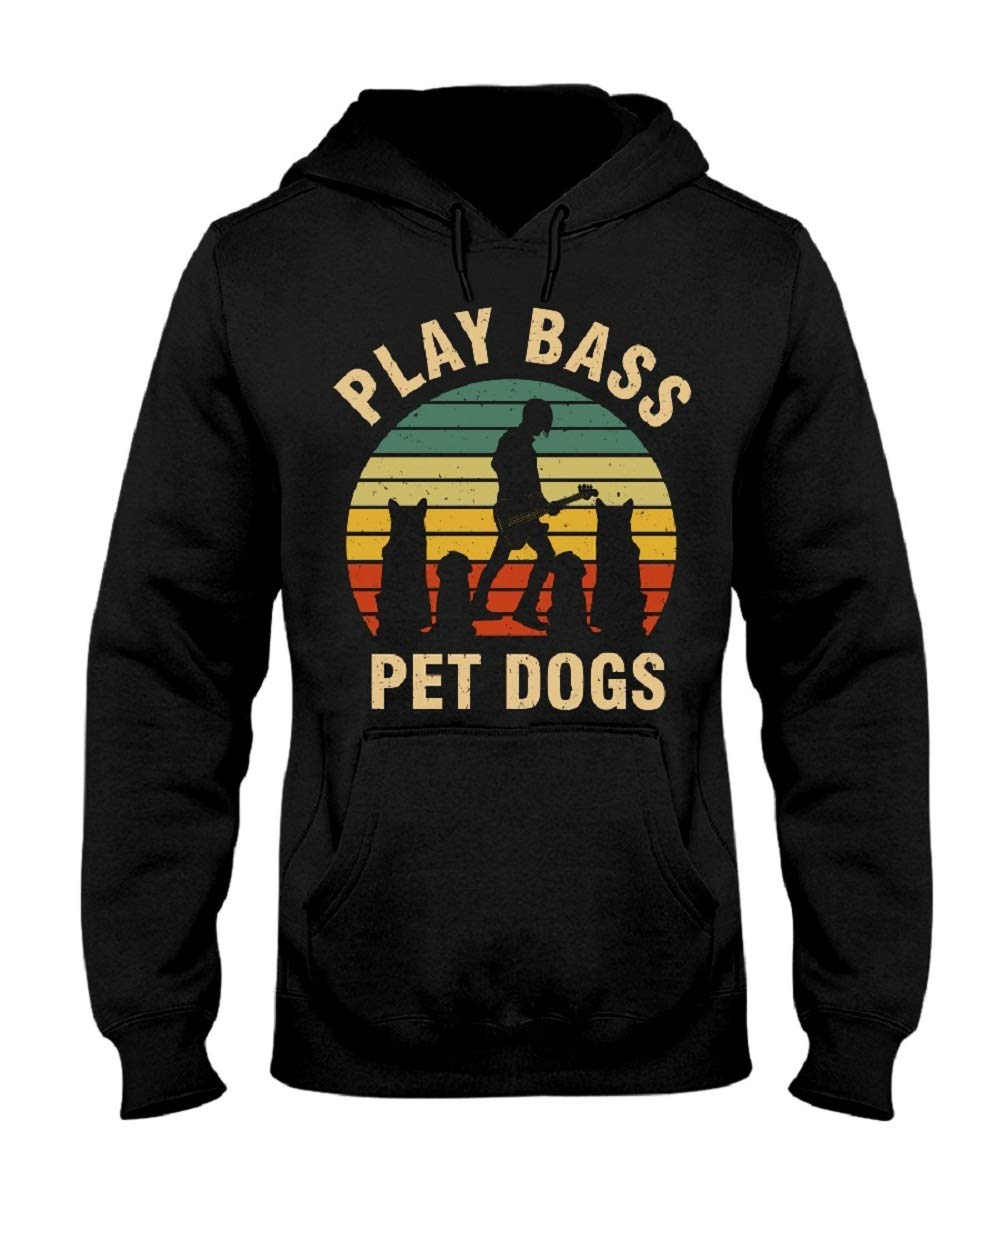 Vintage Play Bass Pet Dogs Hoodie for Women Men Funny Letter Print Tees Black by CrazyMonkeyShirt